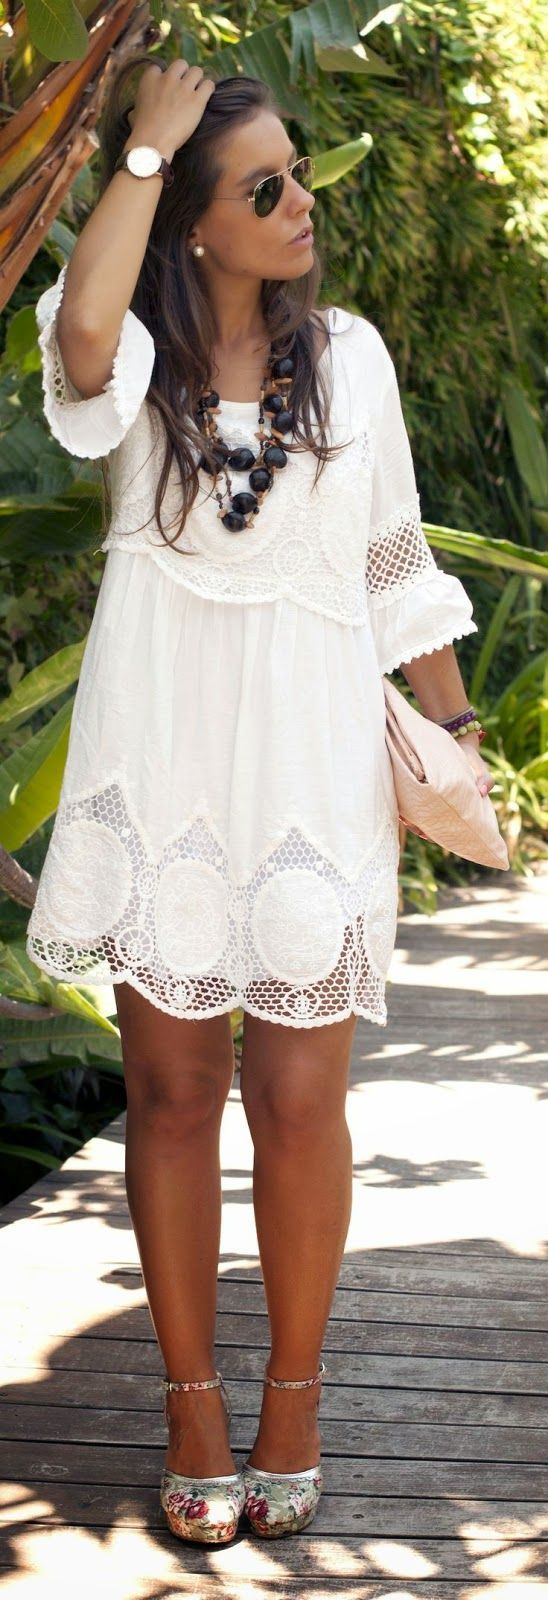 White Lace Boho Chic Style Dress Cute Floral Pattern Shoes Summer Look 2015.